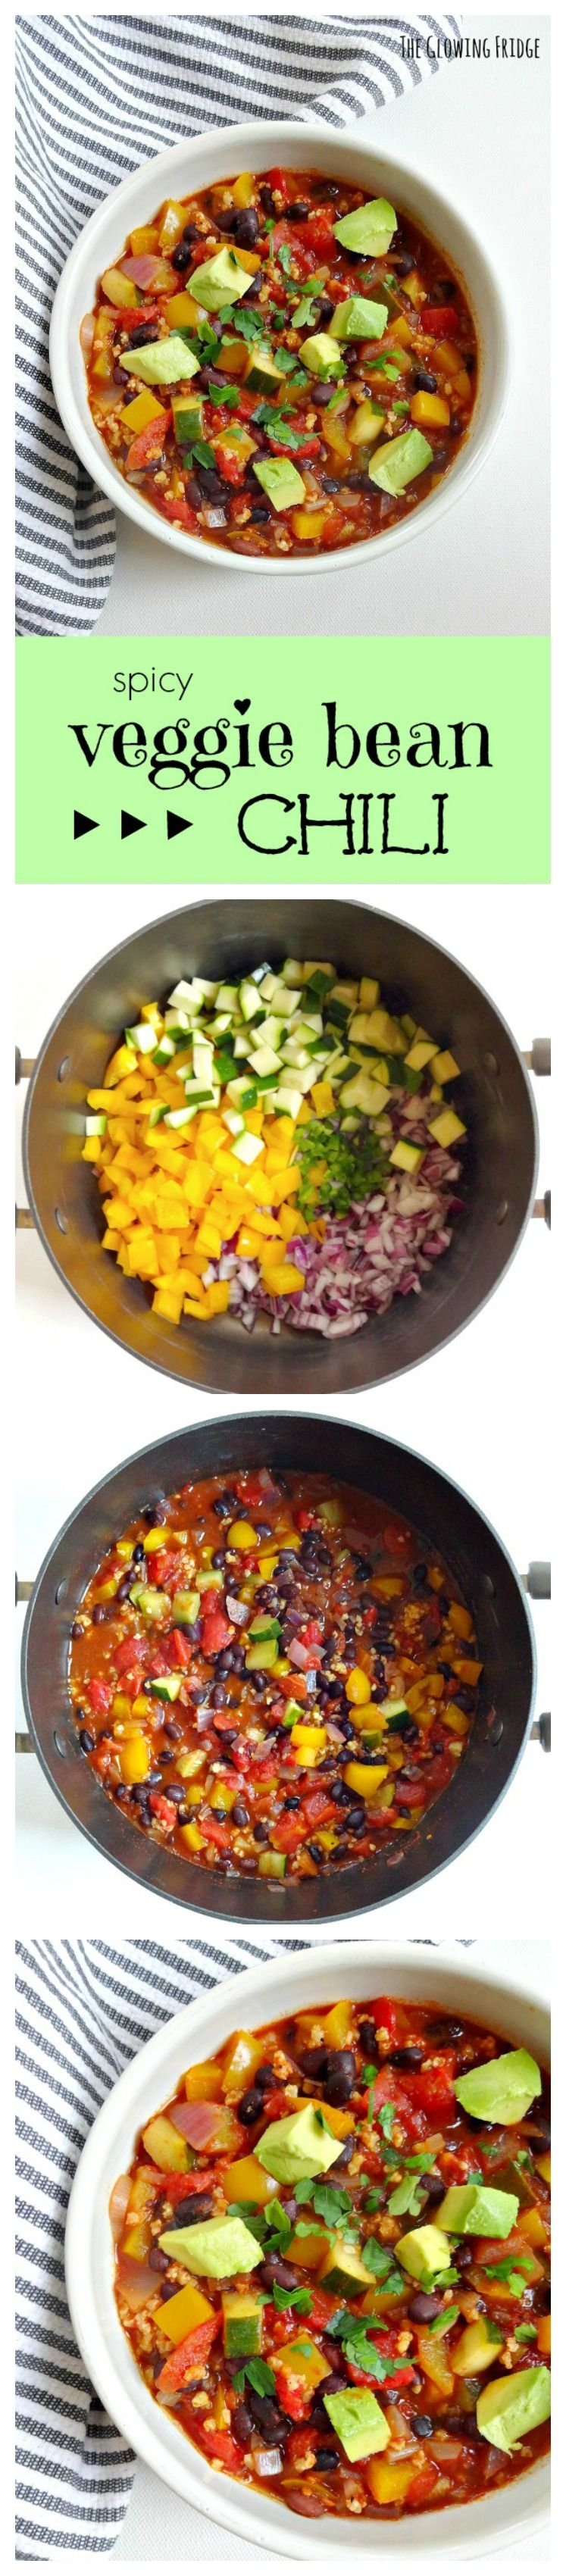 Spicy Veggie Bean Chili - plant based + vegan + gf - fresh, comforting, hearty and full of flavor from a perfect blend of spices!